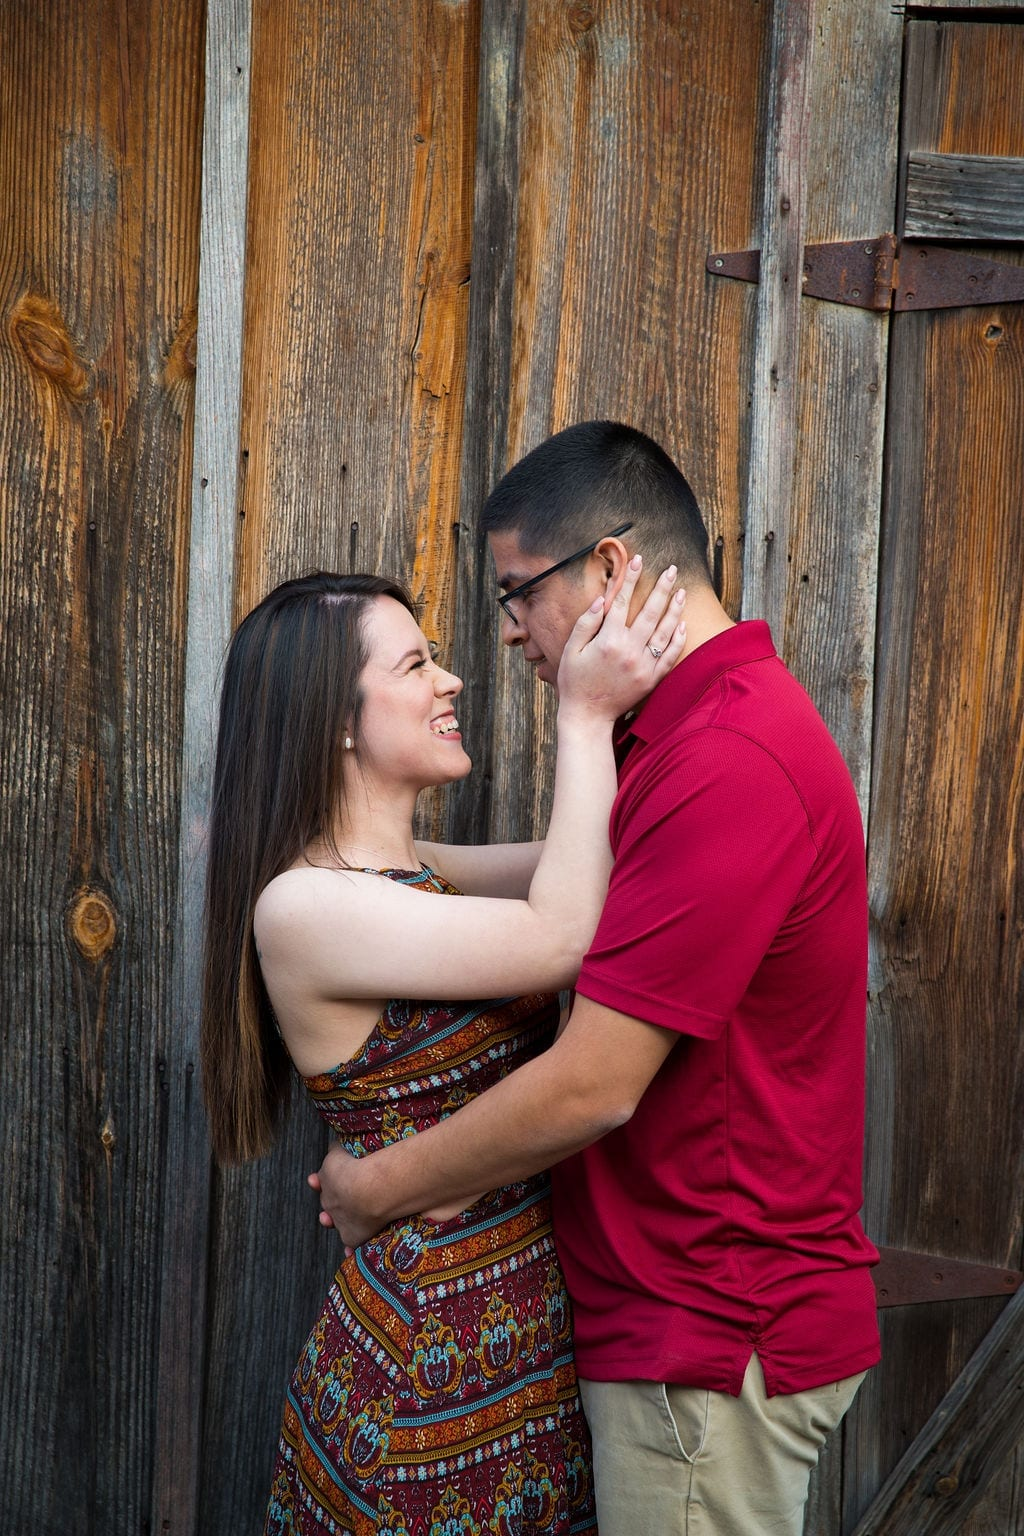 Aamber and Alex engagement session in Gruene Tx on wooden wall looking at each other